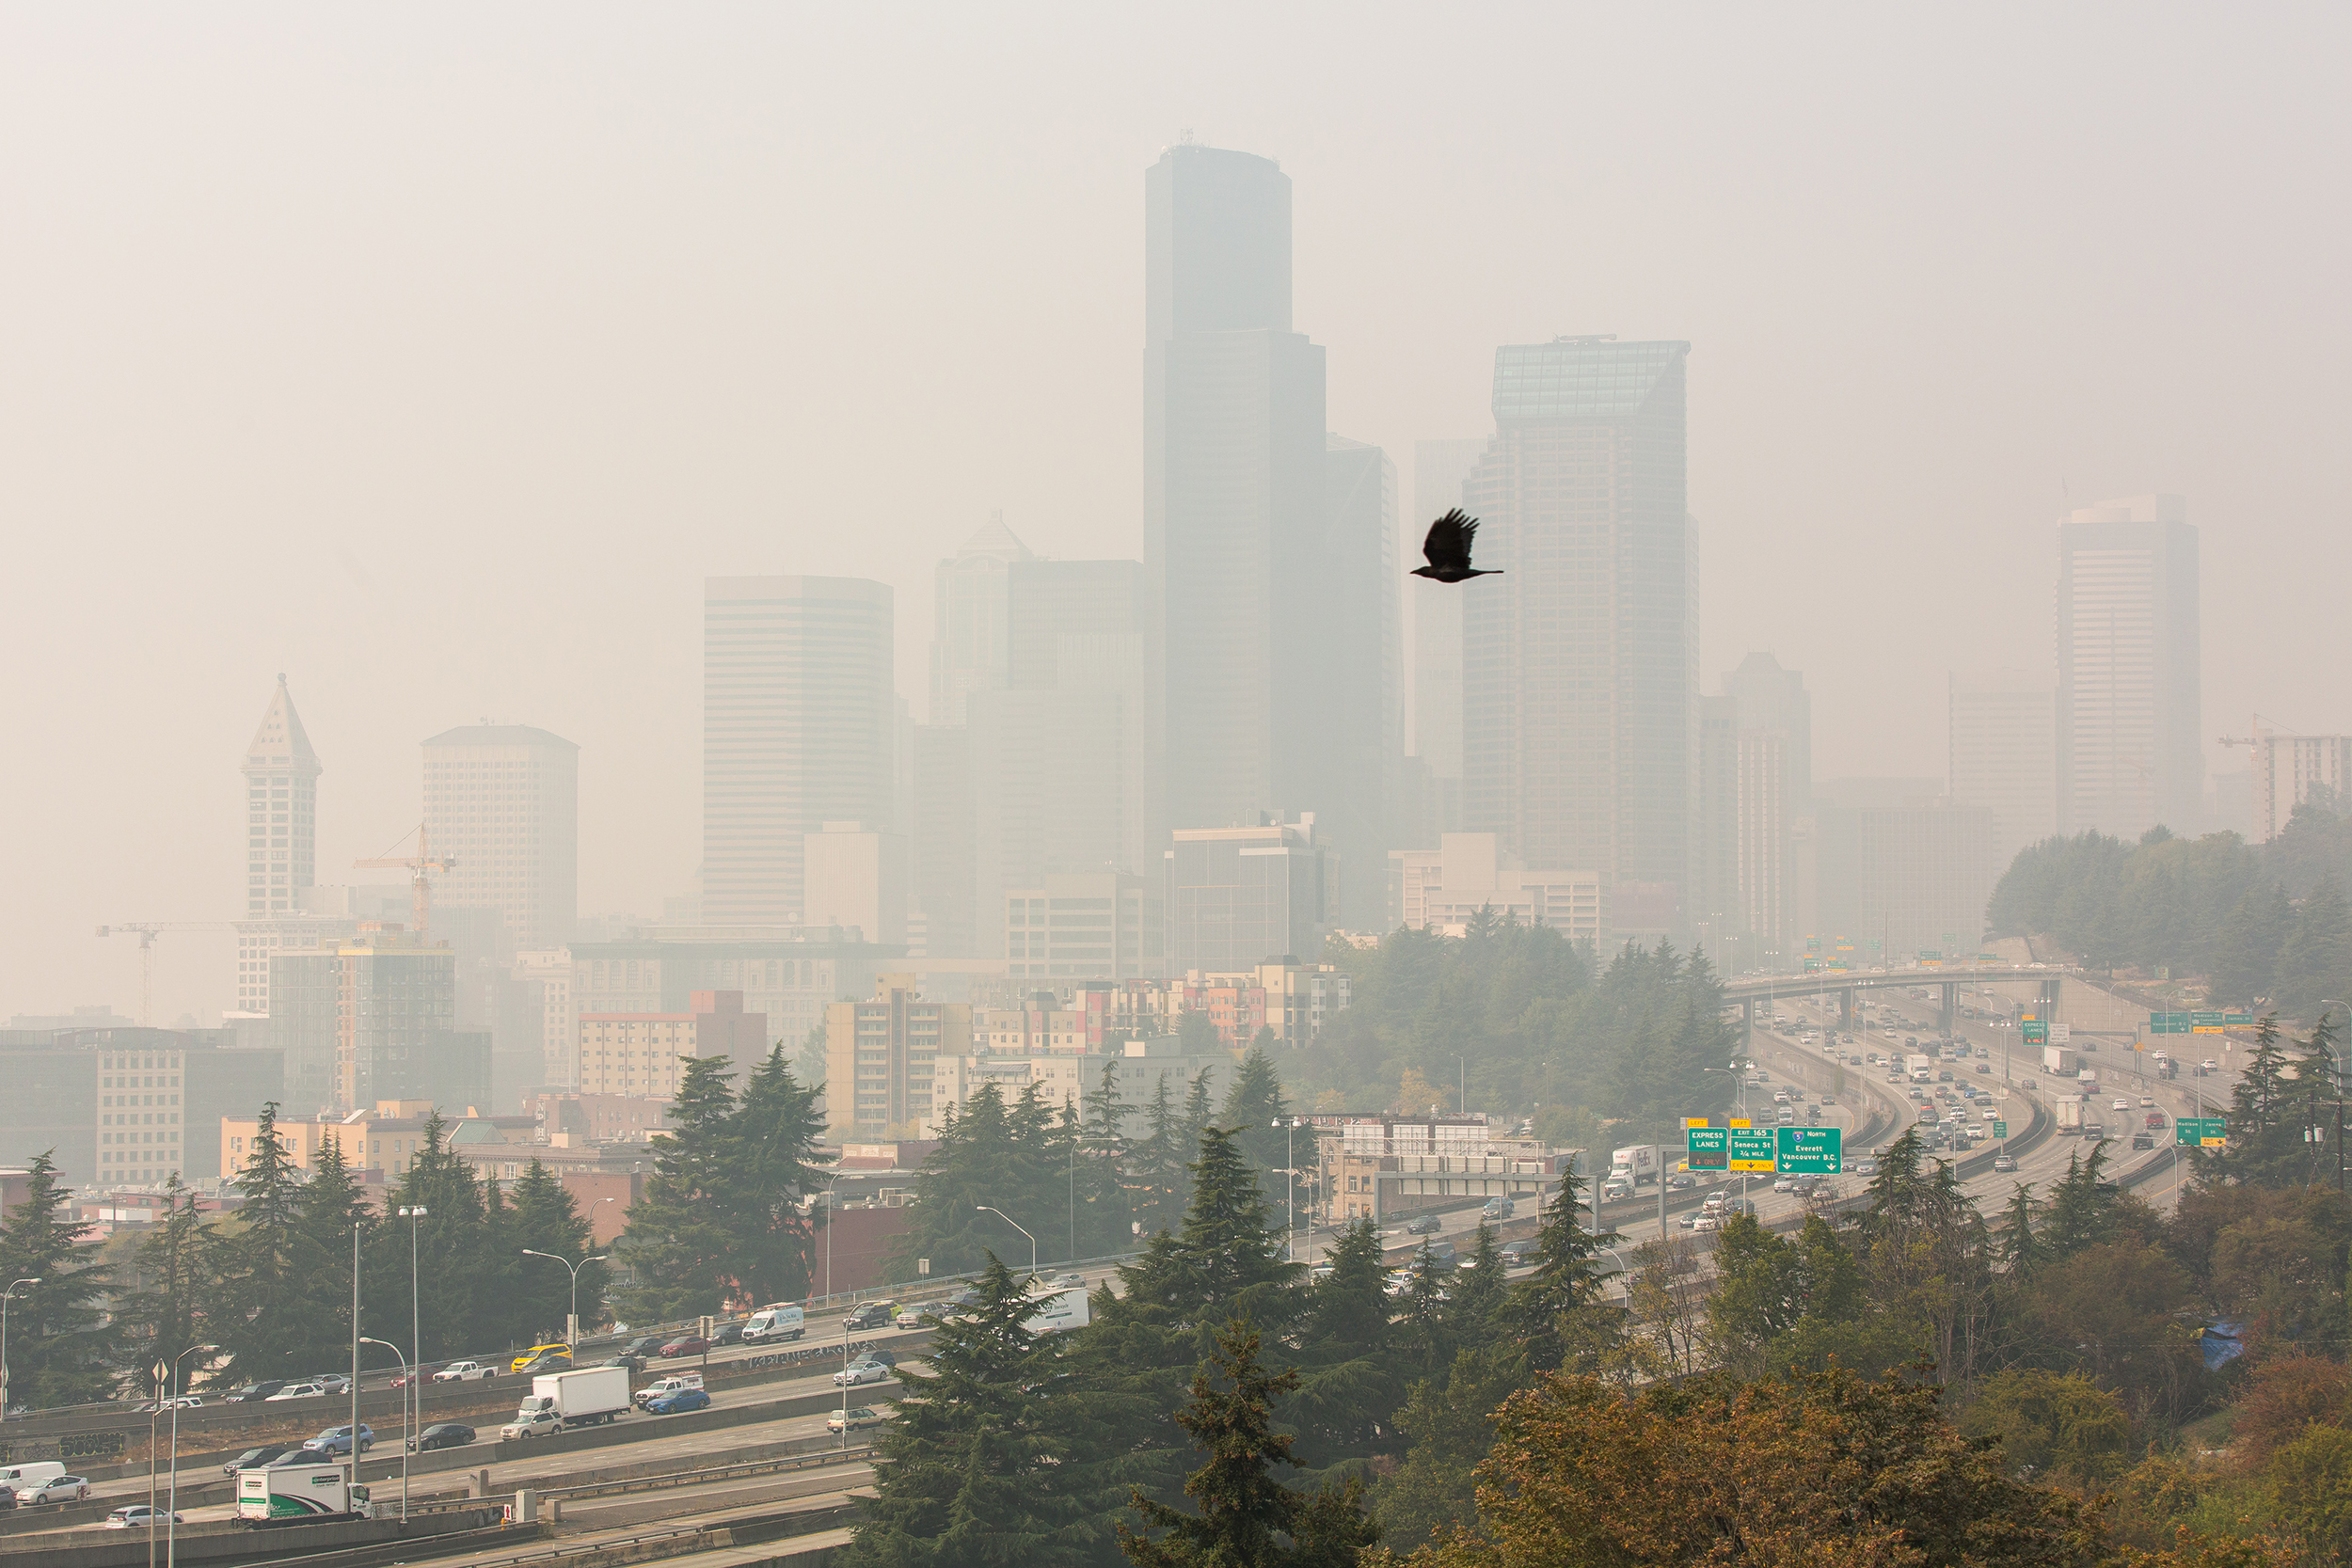 Exposure to heat and wildfire smoke may harm babies, unborn infants